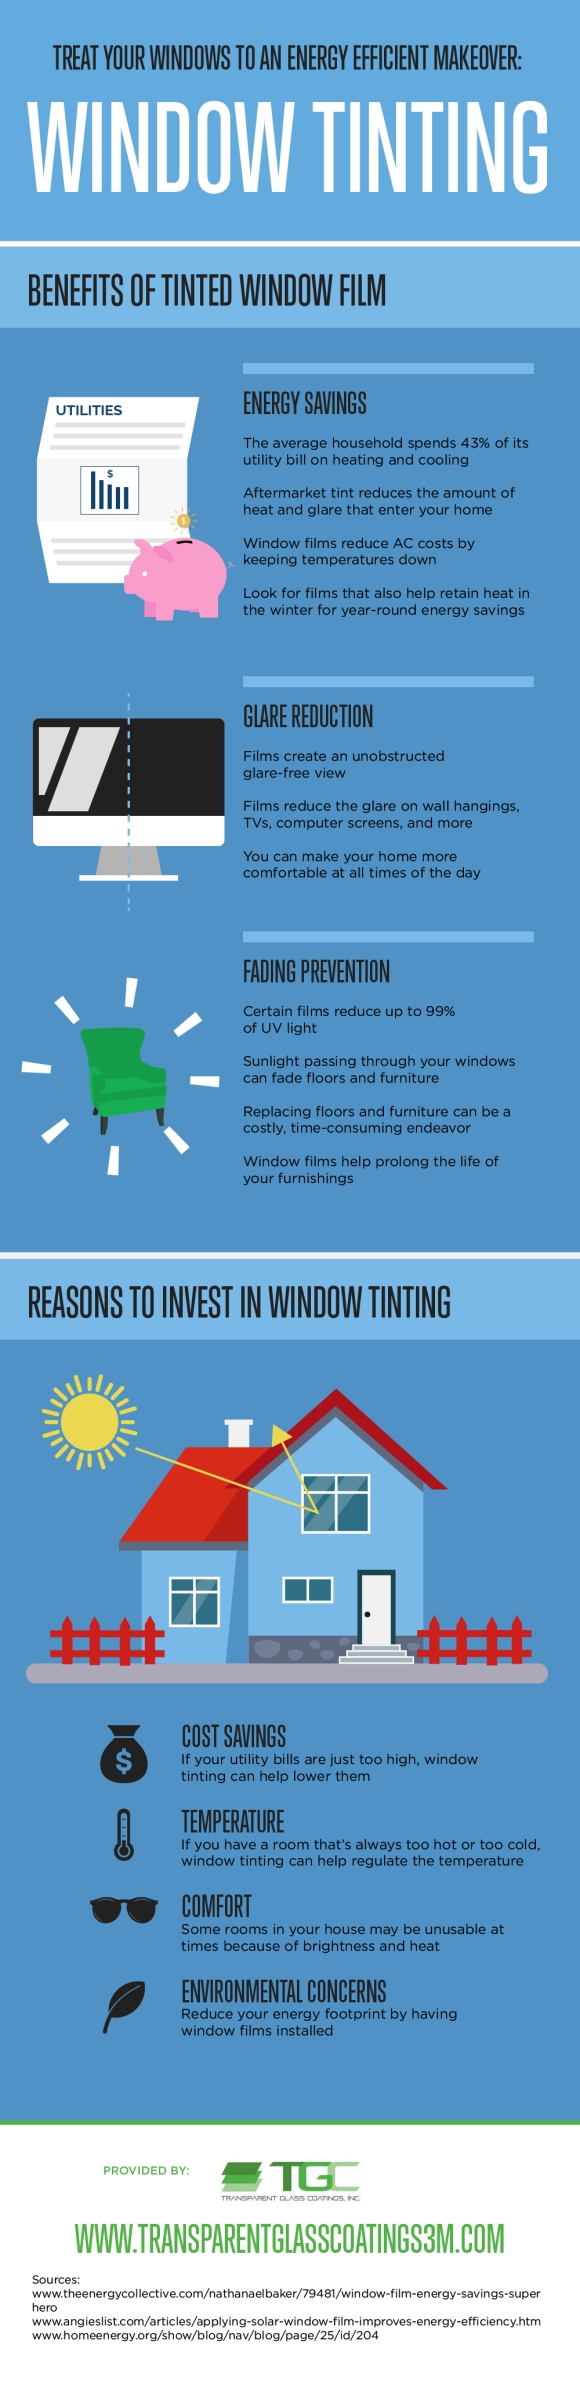 Infographic on window tinting